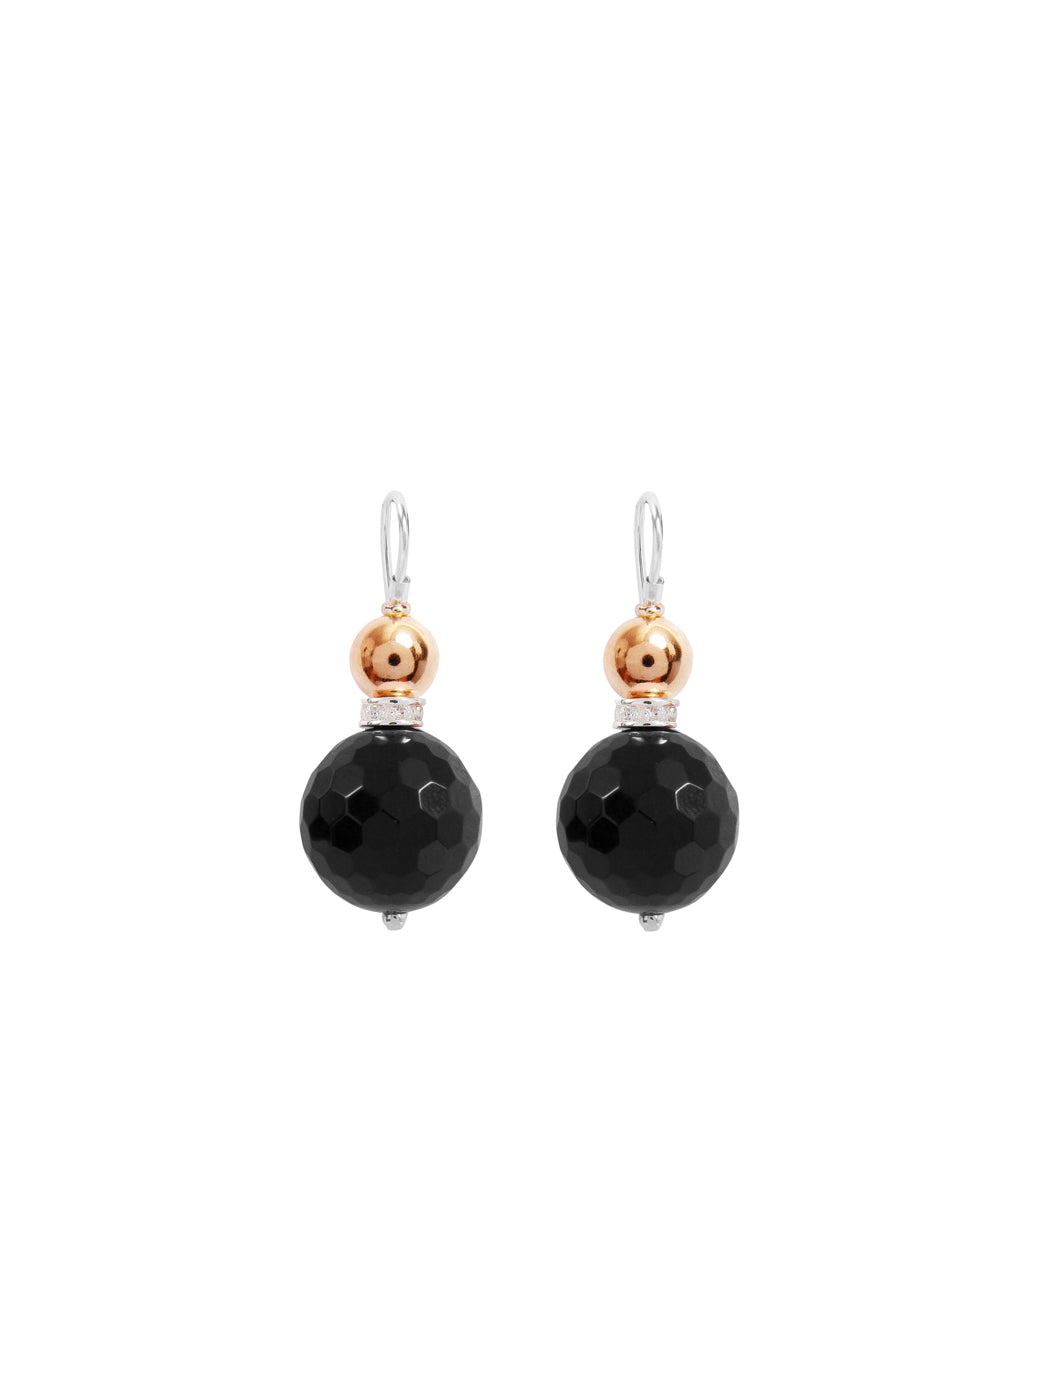 Fiorina Jewellery Double Ball Earrings Black Onyx